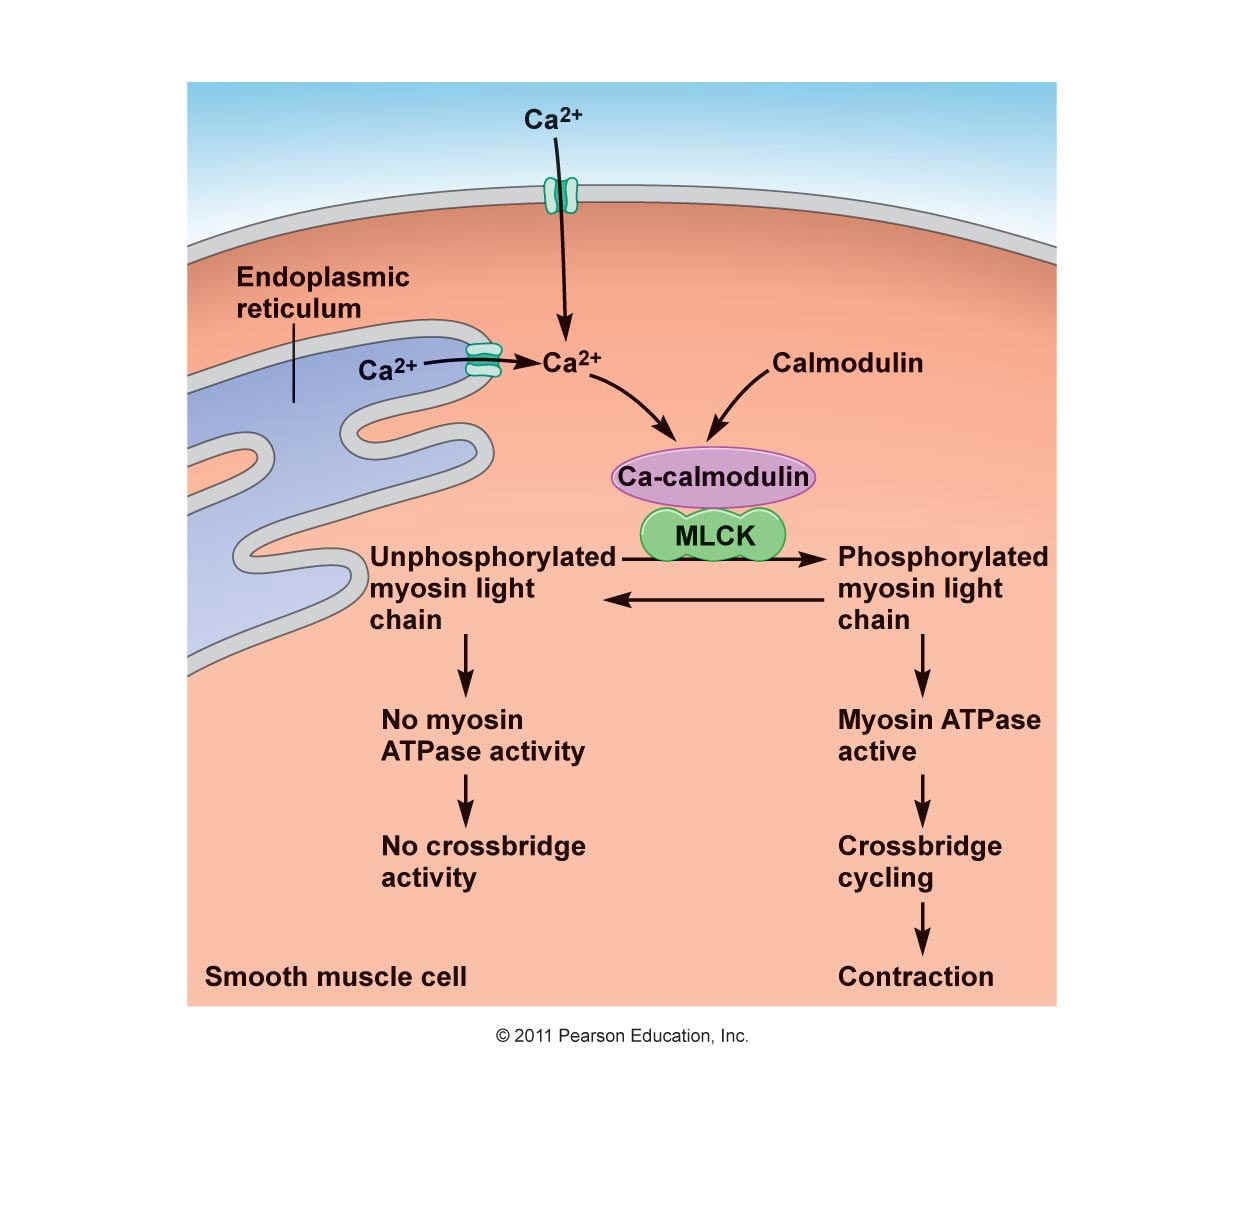 Smooth muscle contraction | Physiology | Pinterest | Muscle contraction